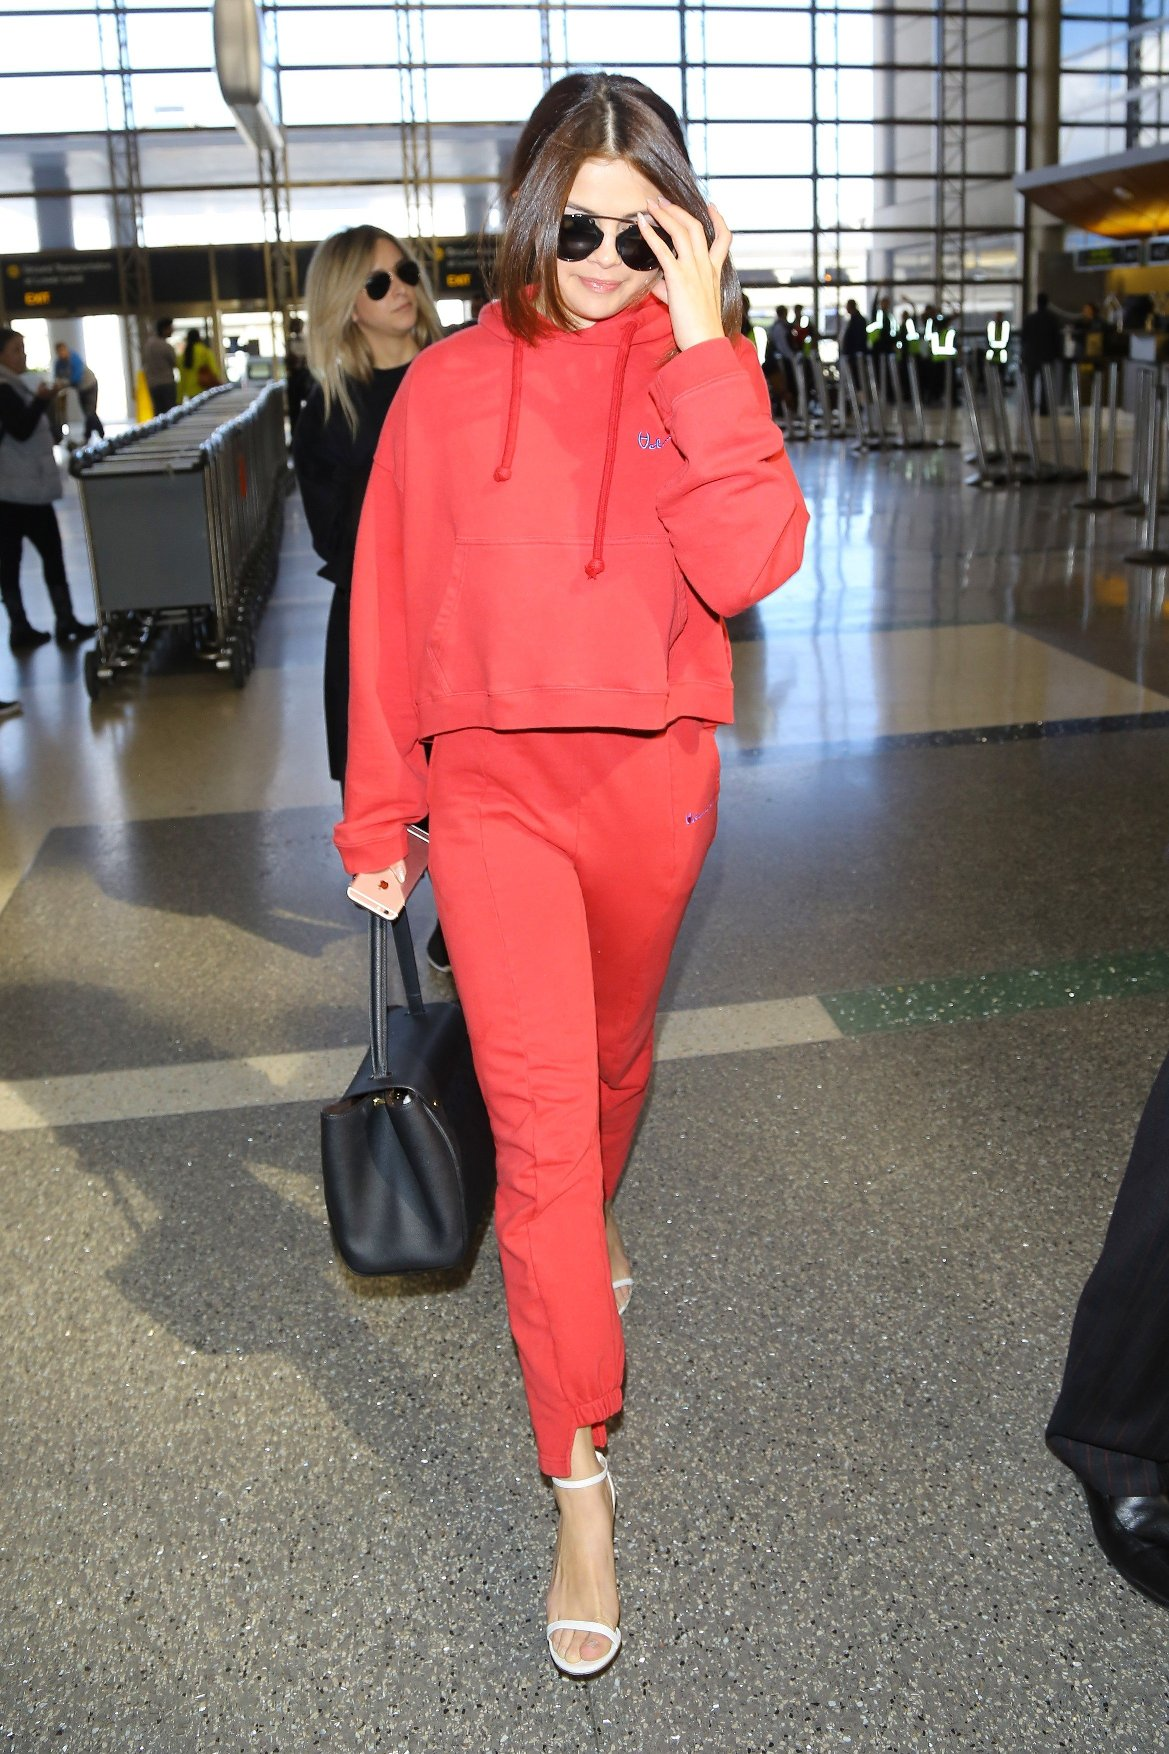 Los Angeles, CA - Selena Gomez proved that you can dress up in a pair of sweatpants and sweater but still look super chic. The singer was hard to miss in a Vetements two piece red outfit paired off with heels and designer bag. She had a sweet smile on as she walked through the terminal.          March 7, 2016, Image: 276576876, License: Rights-managed, Restrictions: NO Brazil, Model Release: no, Credit line: Profimedia, AKM-GSI